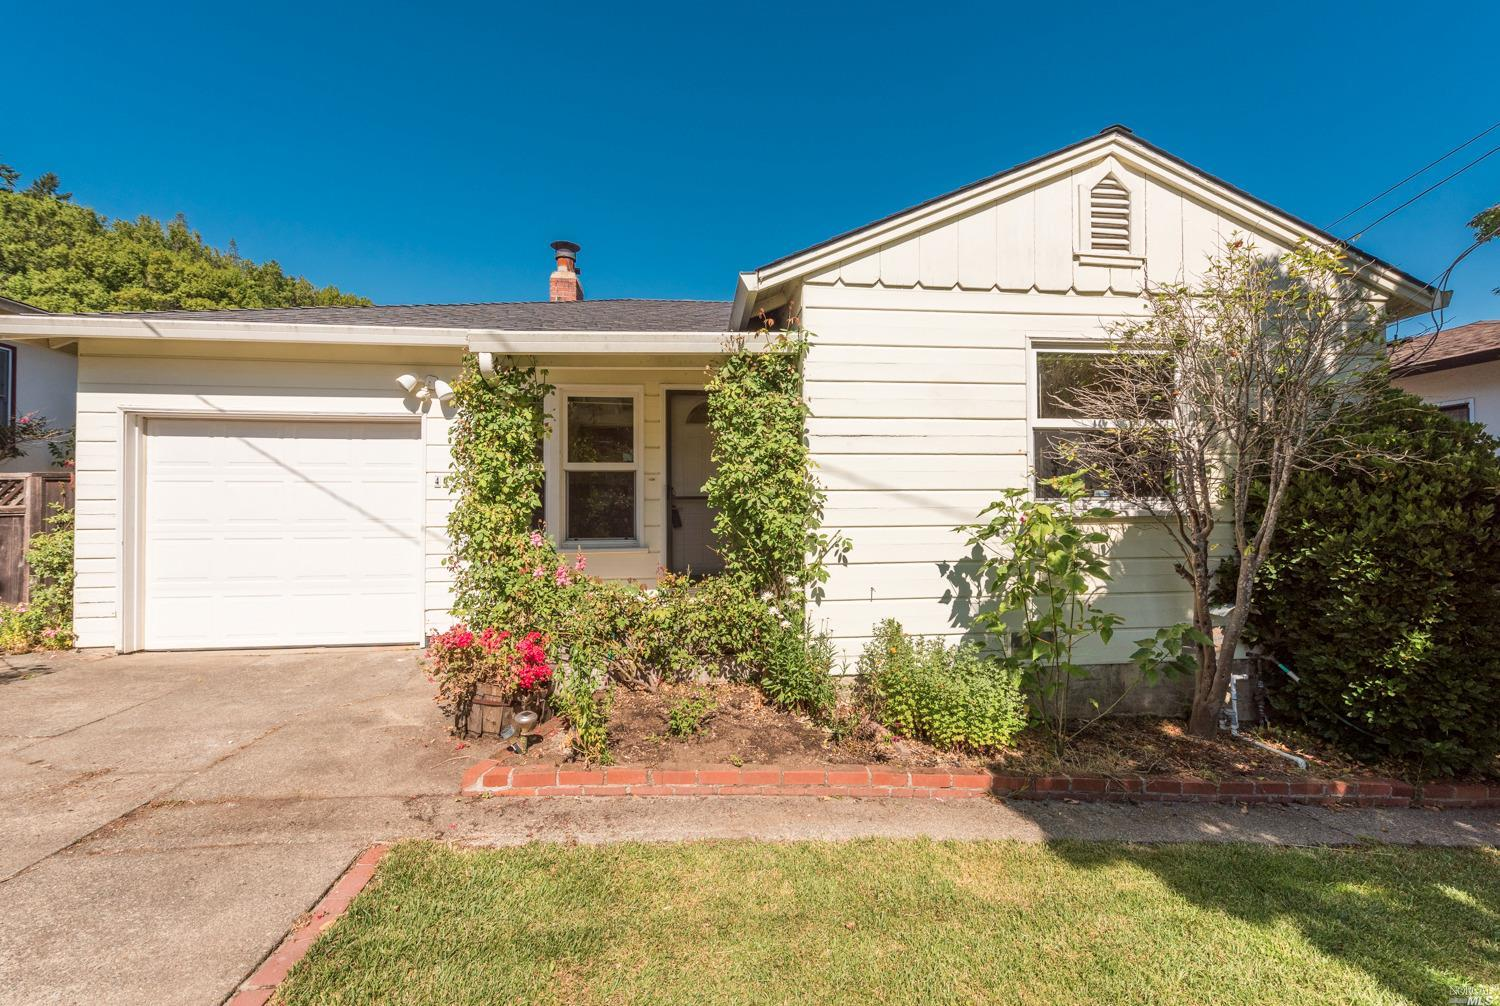 40 Ross Valley Drive San Rafael, California 94901, 2 Bedrooms Bedrooms, ,1 BathroomBathrooms,Residential,For Sale,40 Ross Valley,21916116